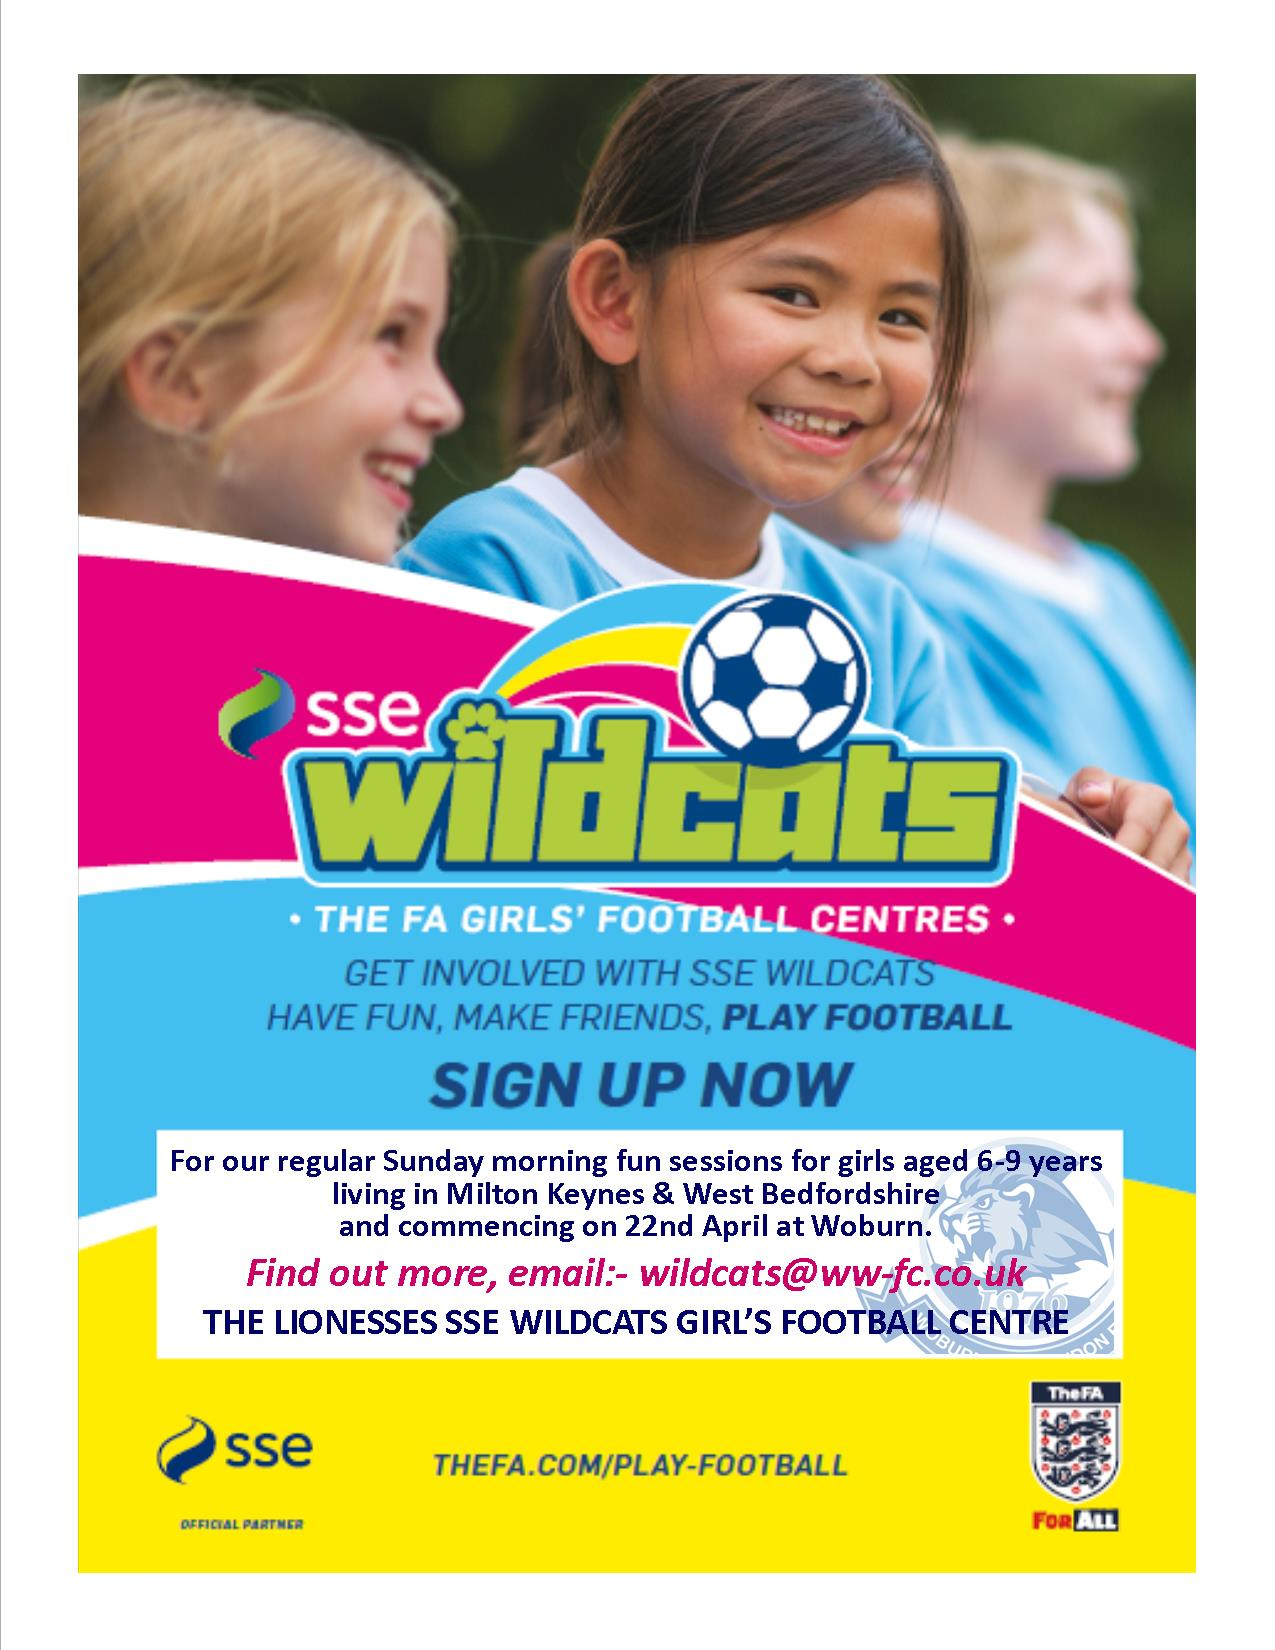 THE LIONESSES SSE WILDCATS GIRLS FOOTBALL CENTRE IS LAUNCHED post thumbnail image